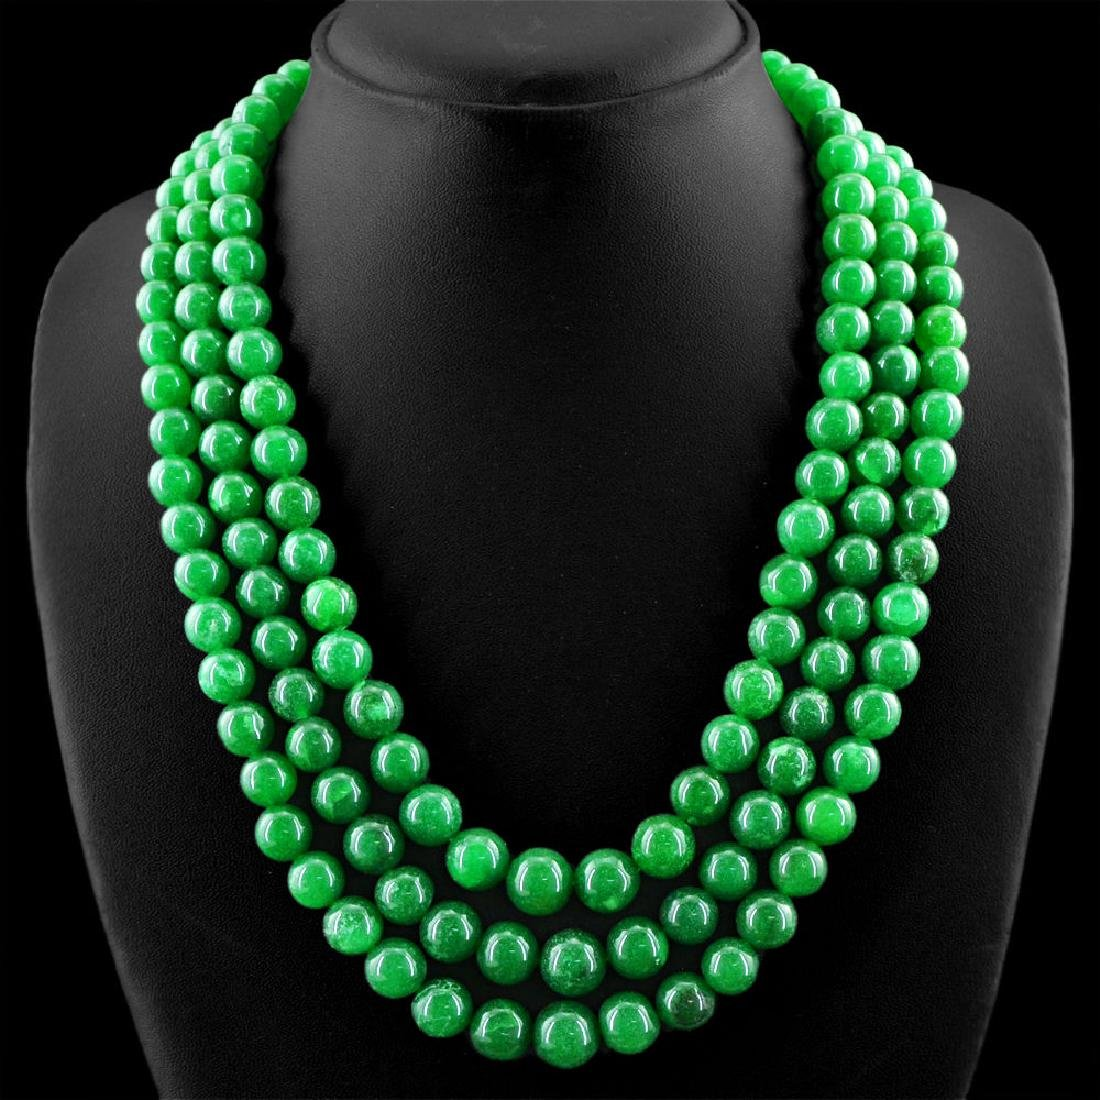 EARTH MINED 3 STRAND RICH GREEN EMERALD ROUND SHAPE - 2